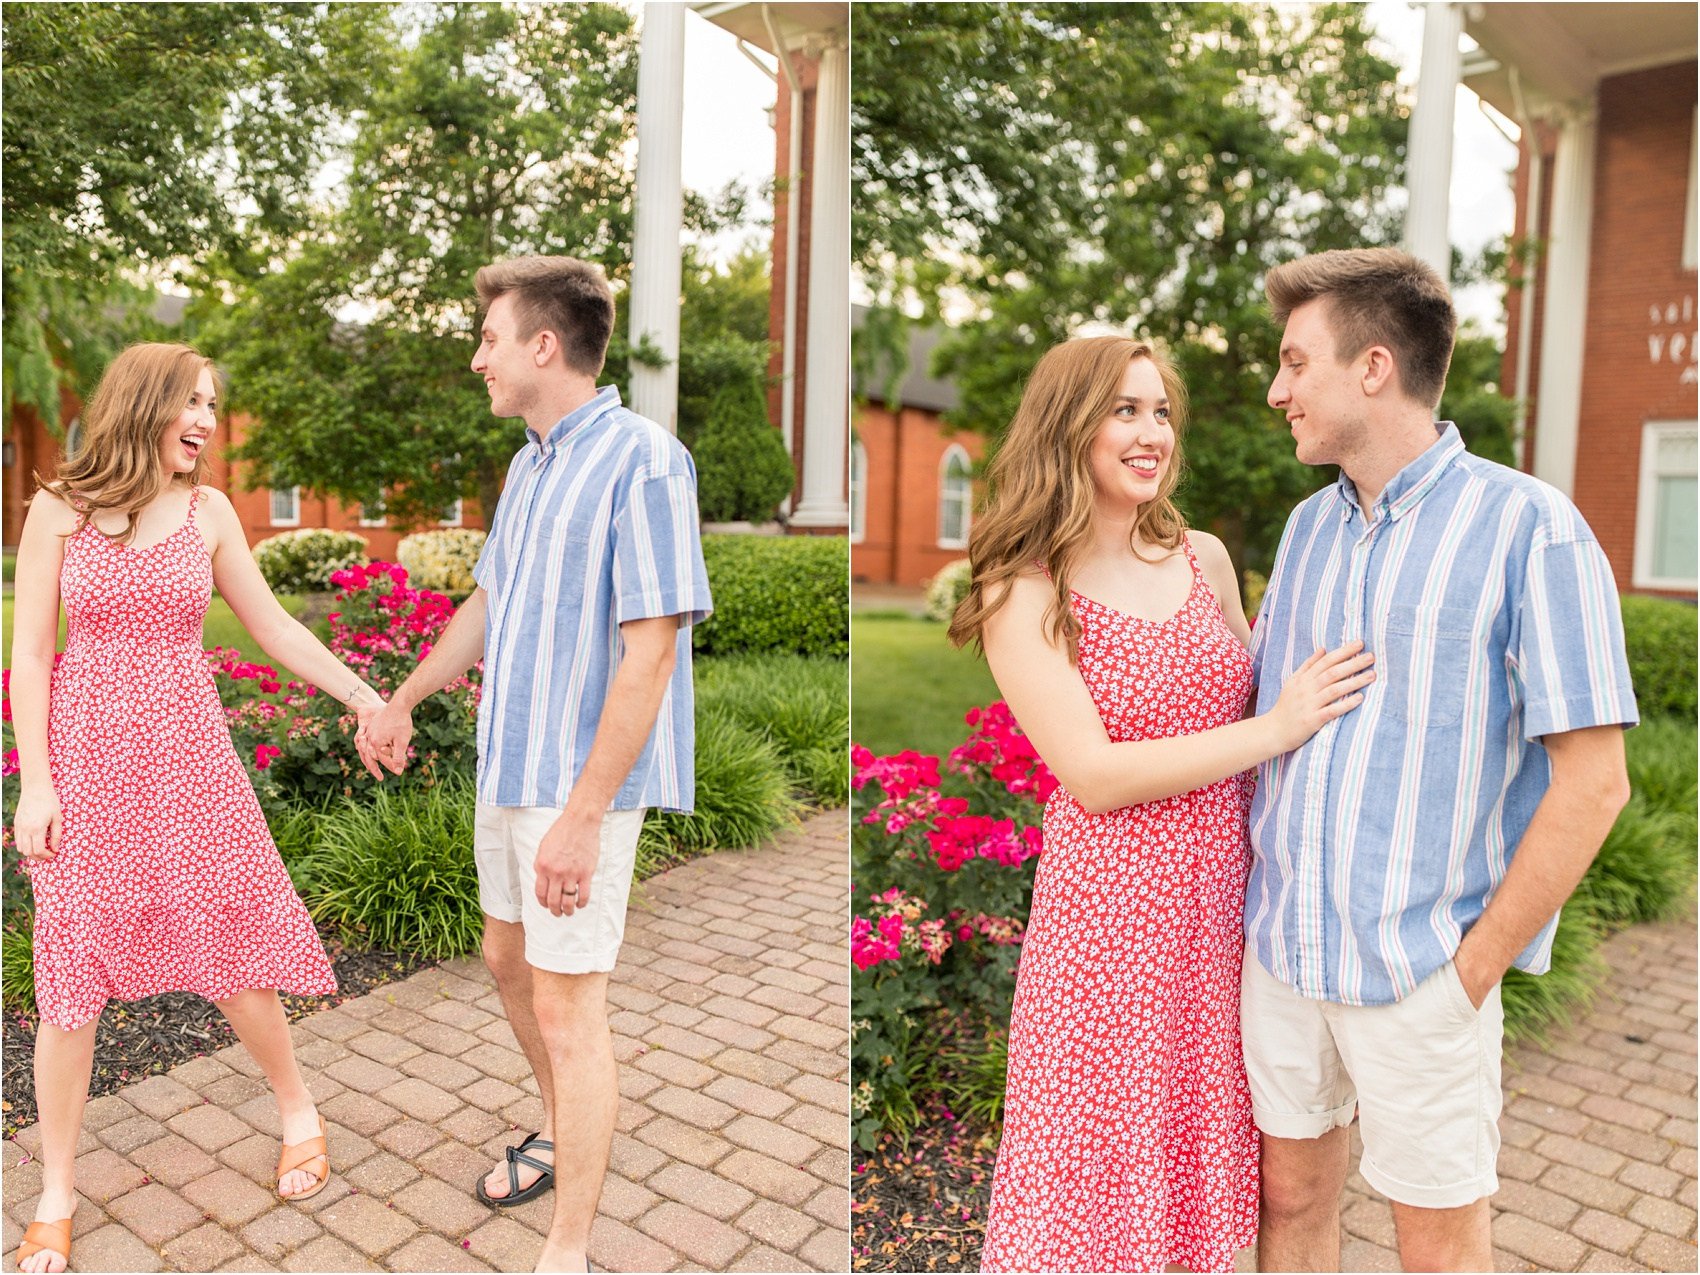 Savannah Eve Photography LLC- Nate & Beth-17.jpg